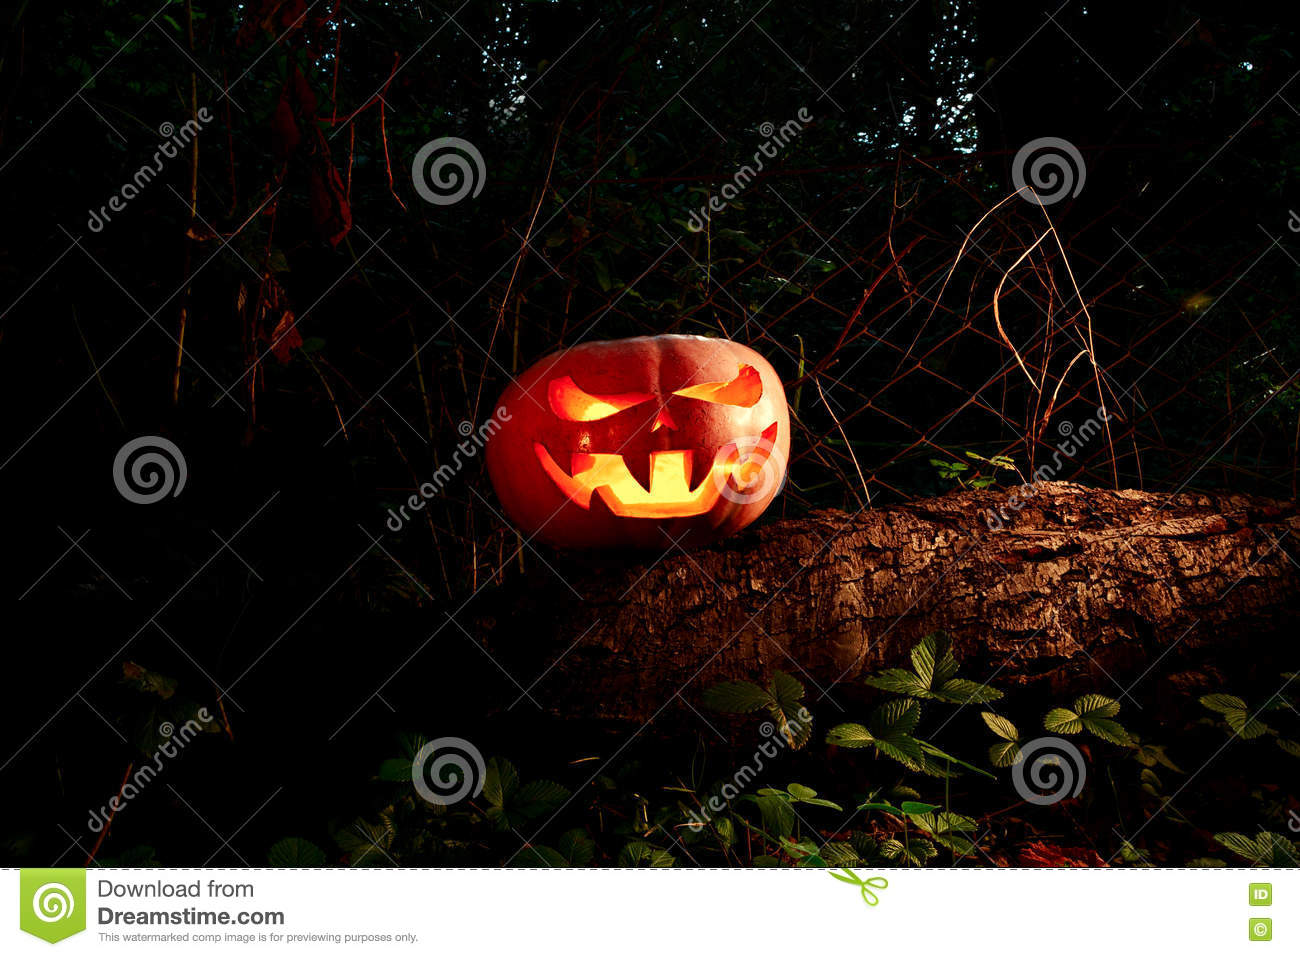 Halloween Scary and creepy pumpkin on a log in the darkness with